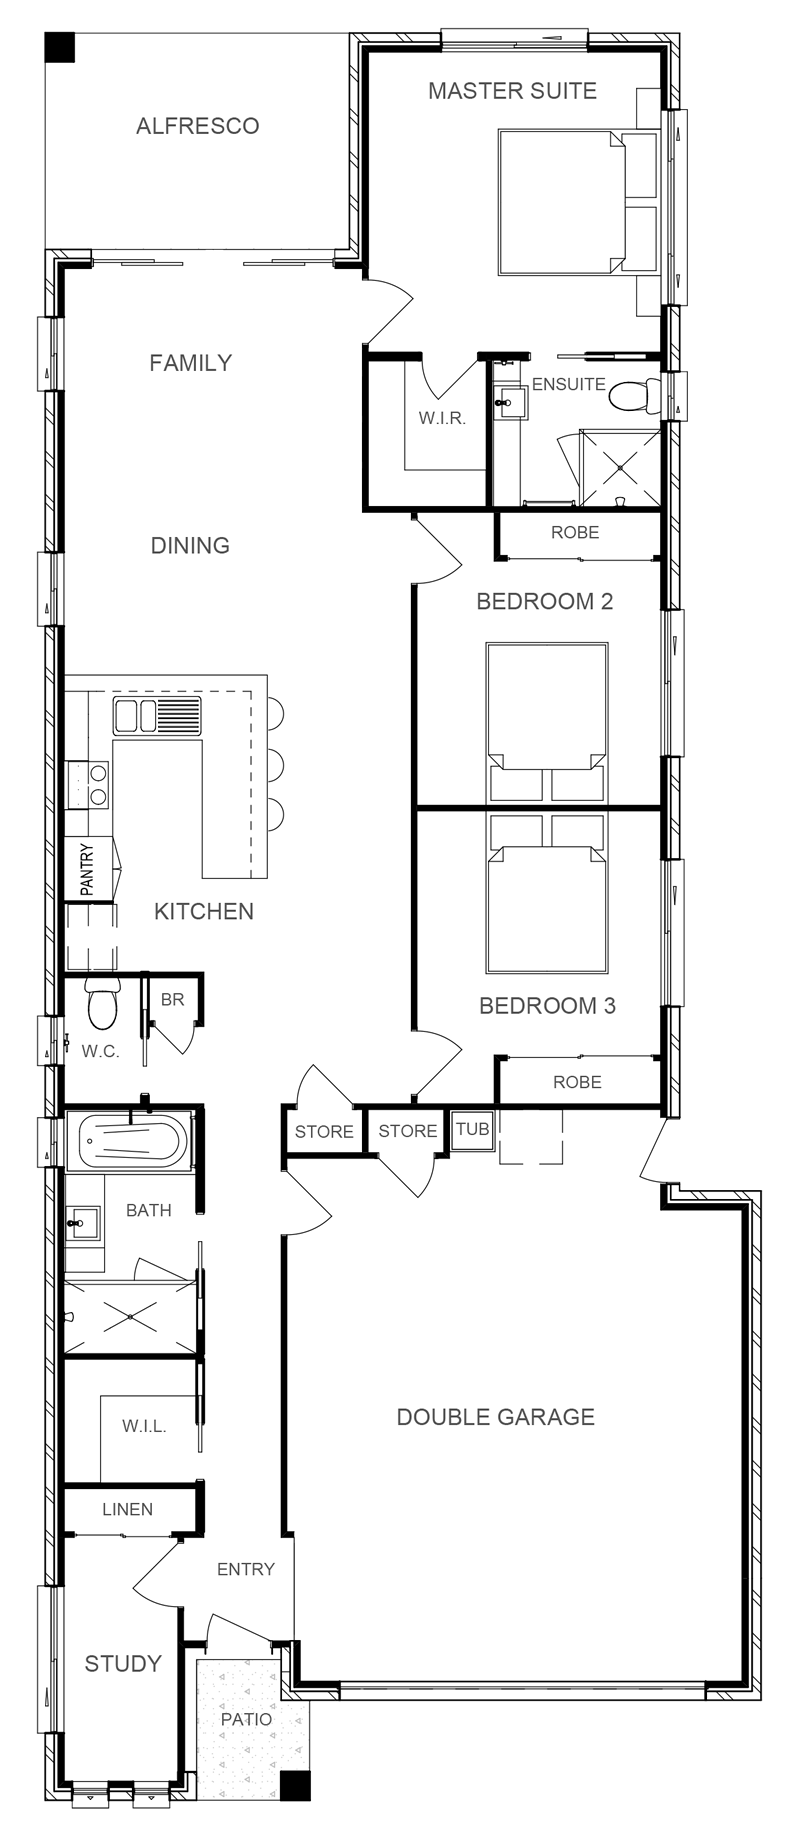 NEBRASKA 172 Floor Plan